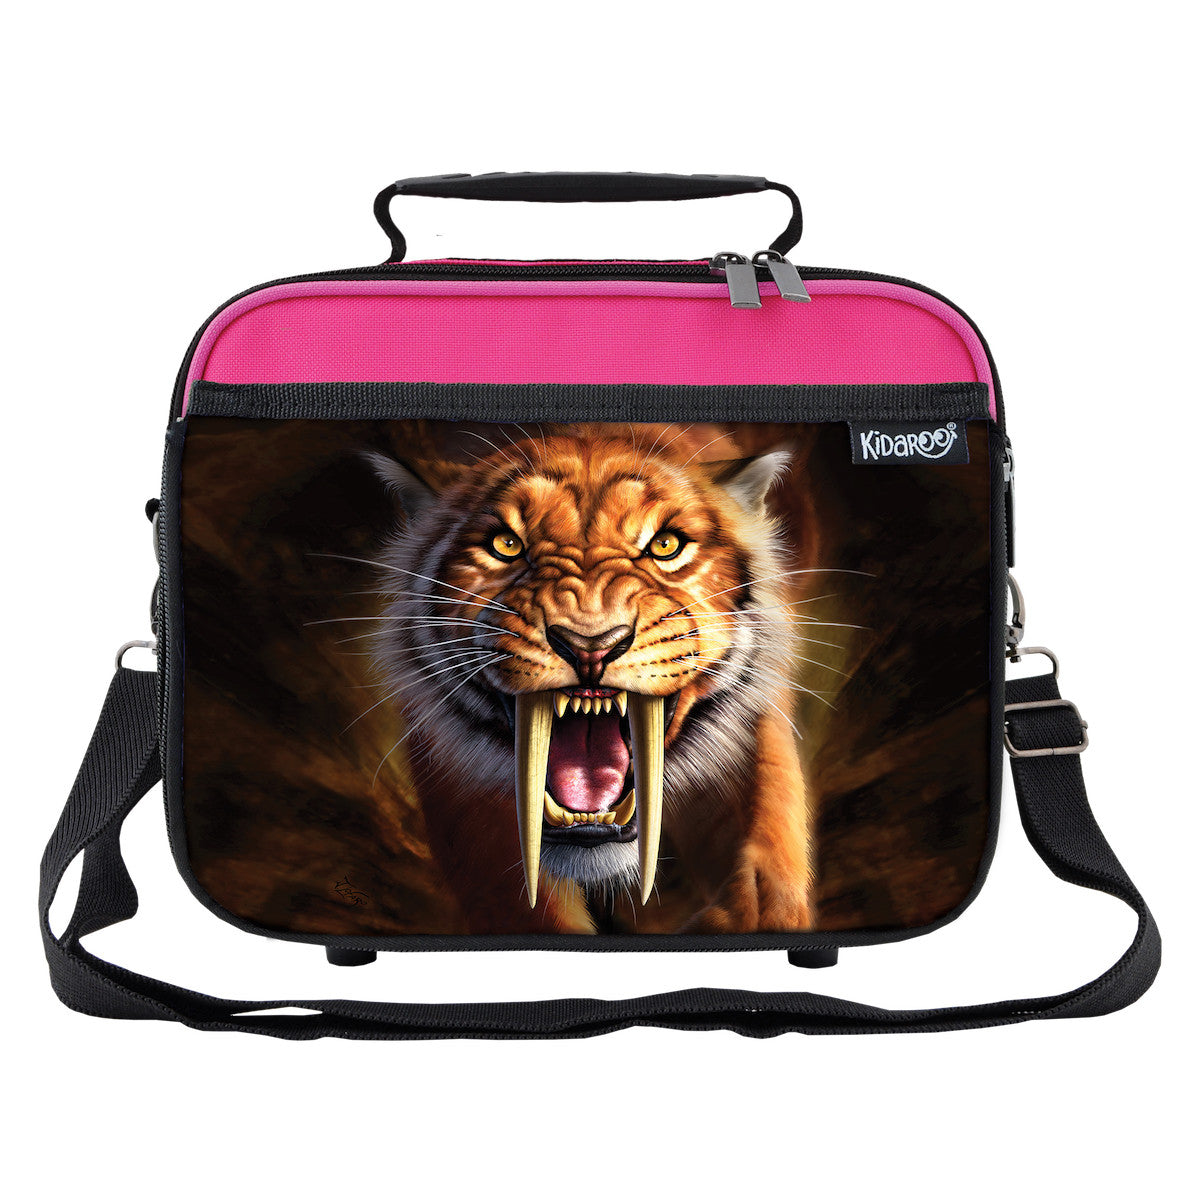 SaberTooth Tiger School Lunchbox, Tote Bag for Boys, Girls, Kids